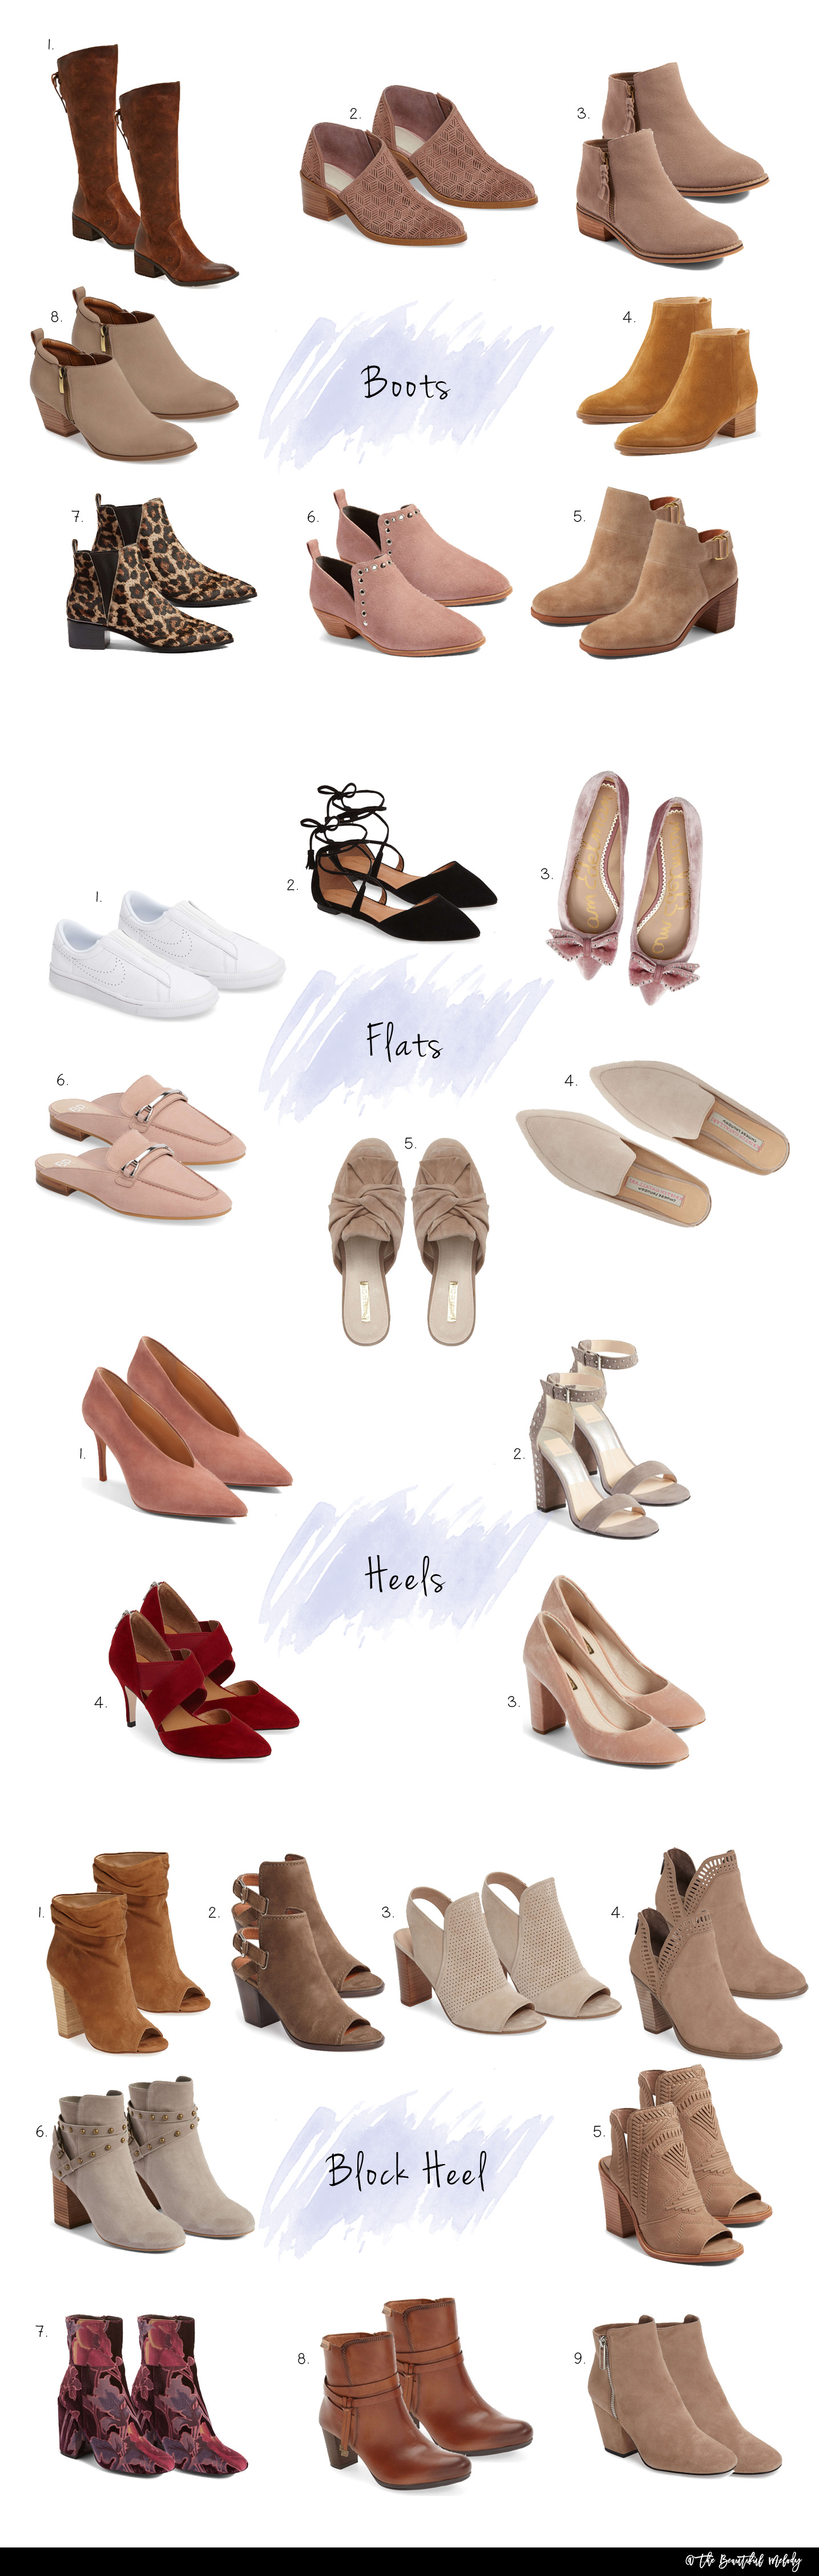 Best of Shoes from the NSale!